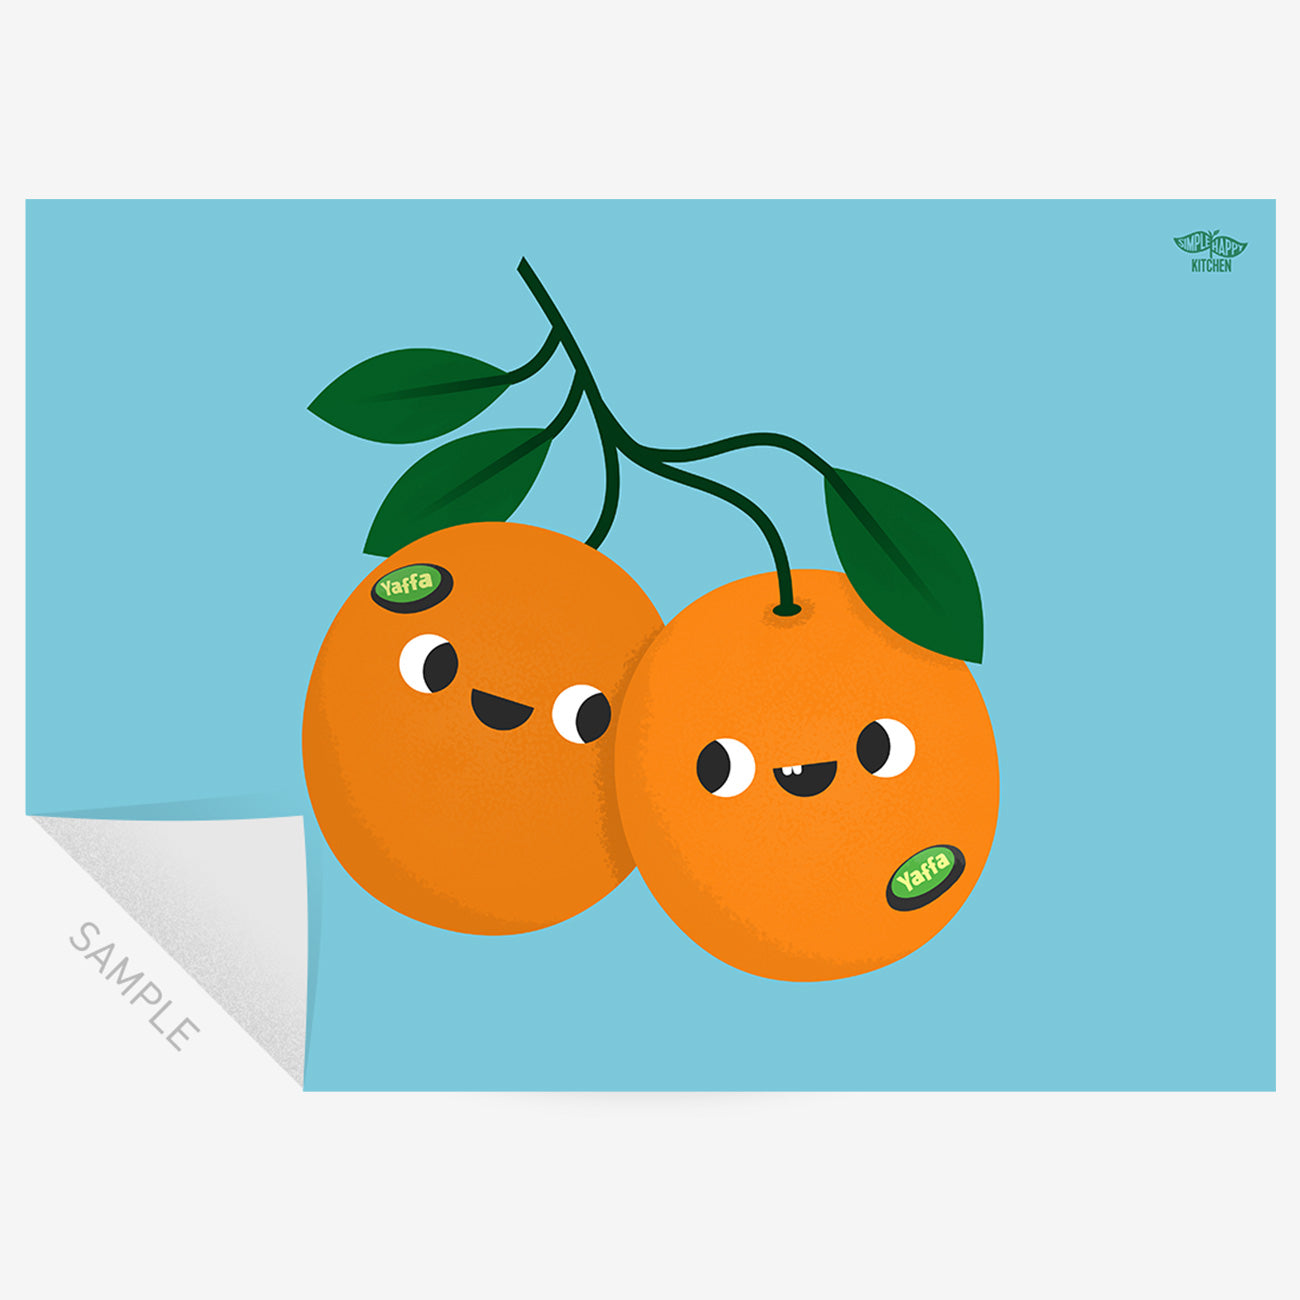 Two illustrated oranges looking at each other